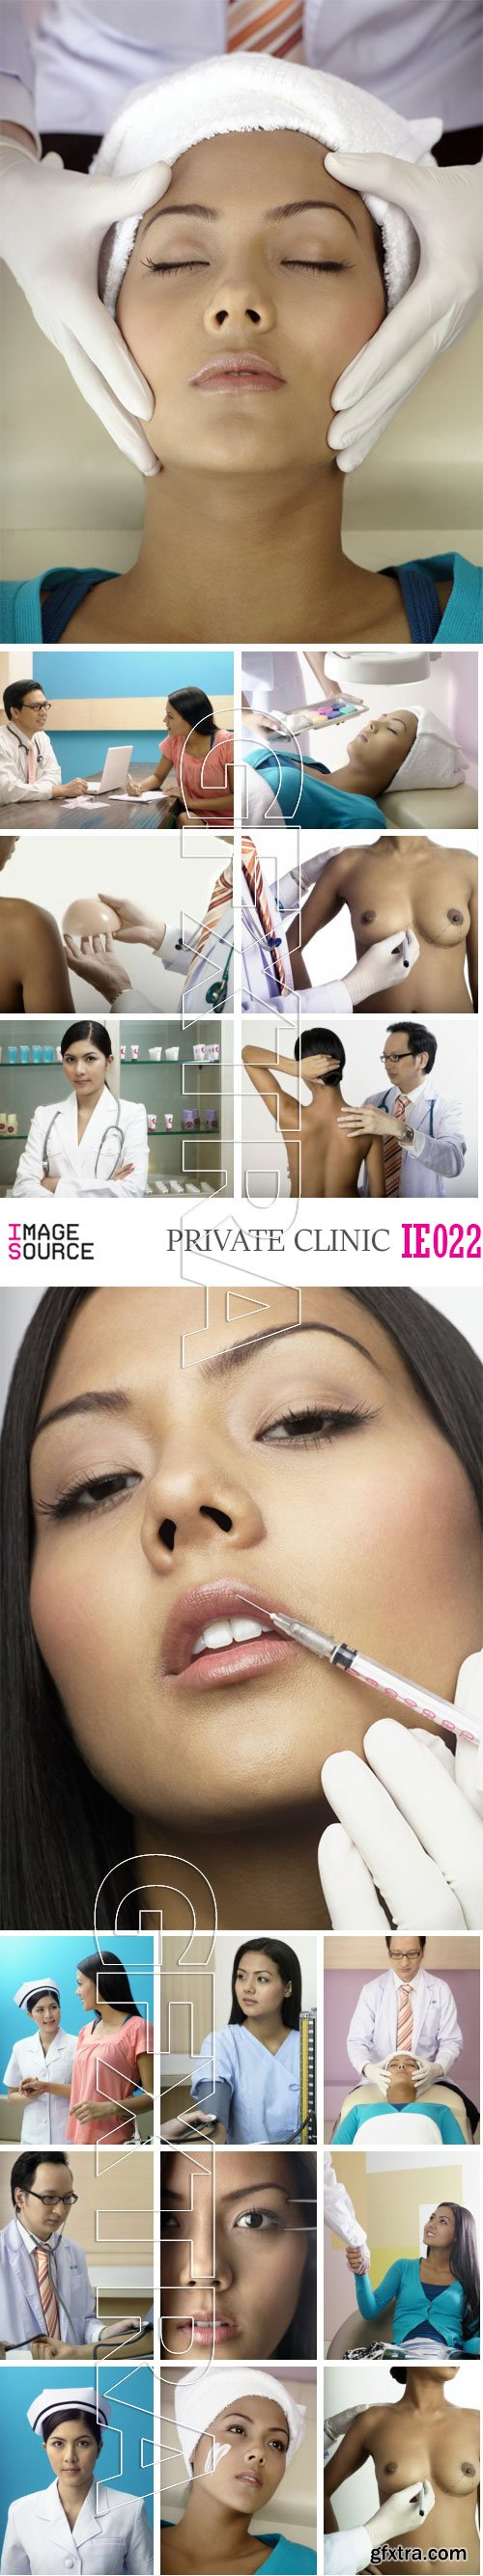 Image Source IE022 Private Clinic